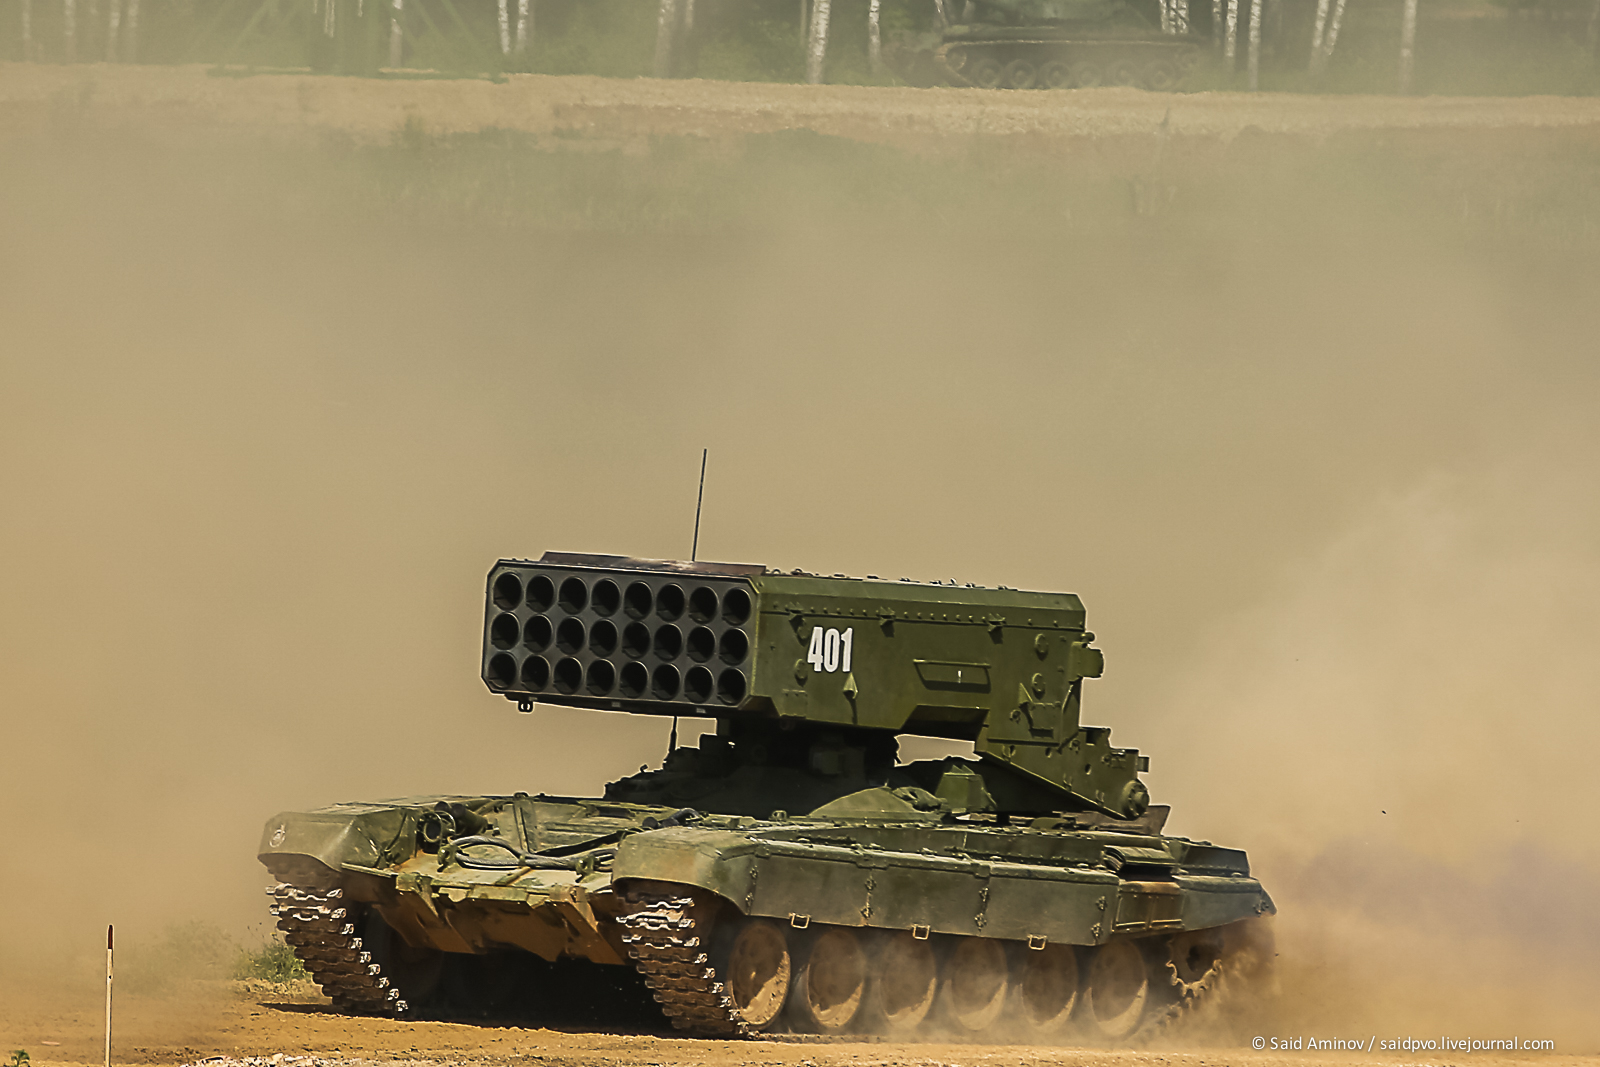 Russian Military Photos and Videos #2 - Page 33 0_22ddac_d1c5a1a2_orig